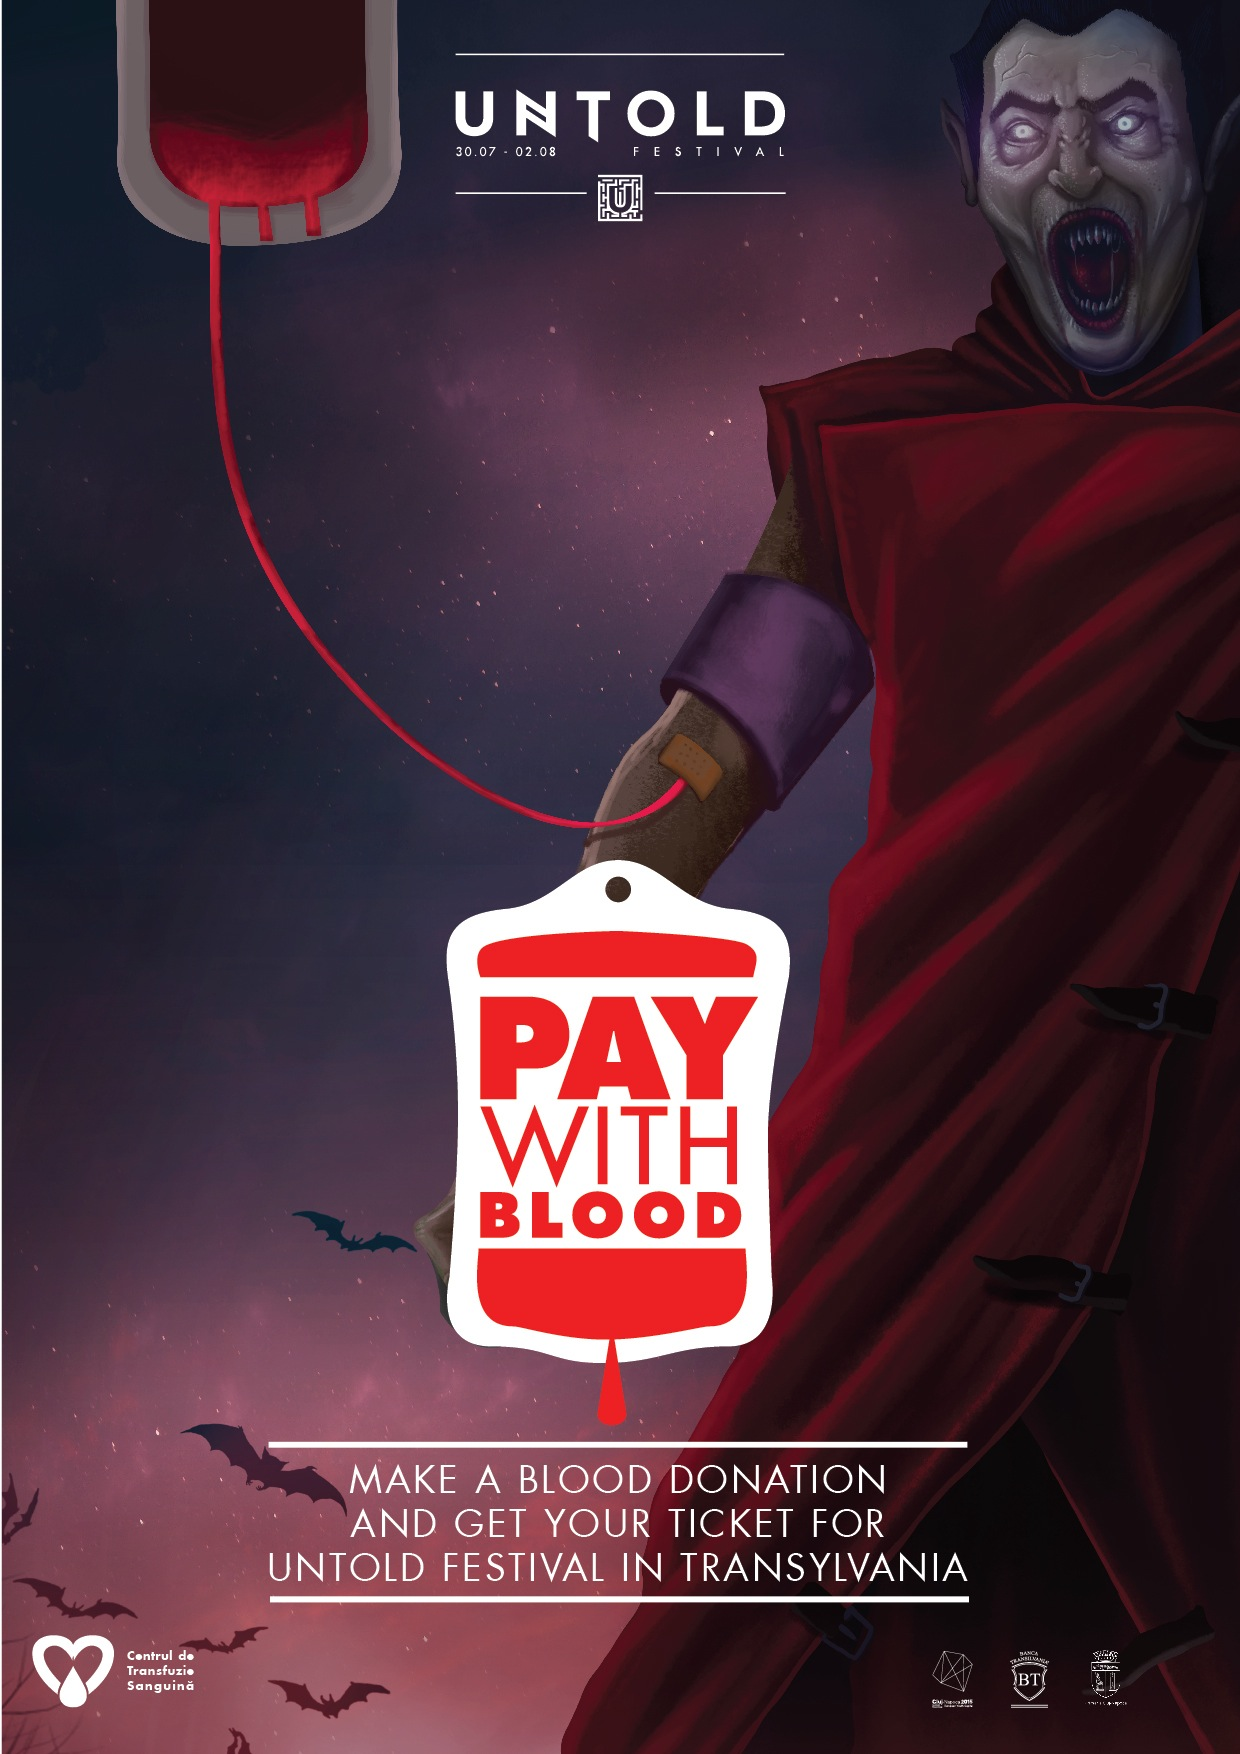 print-outdoor-untold-festival-pay-with-blood